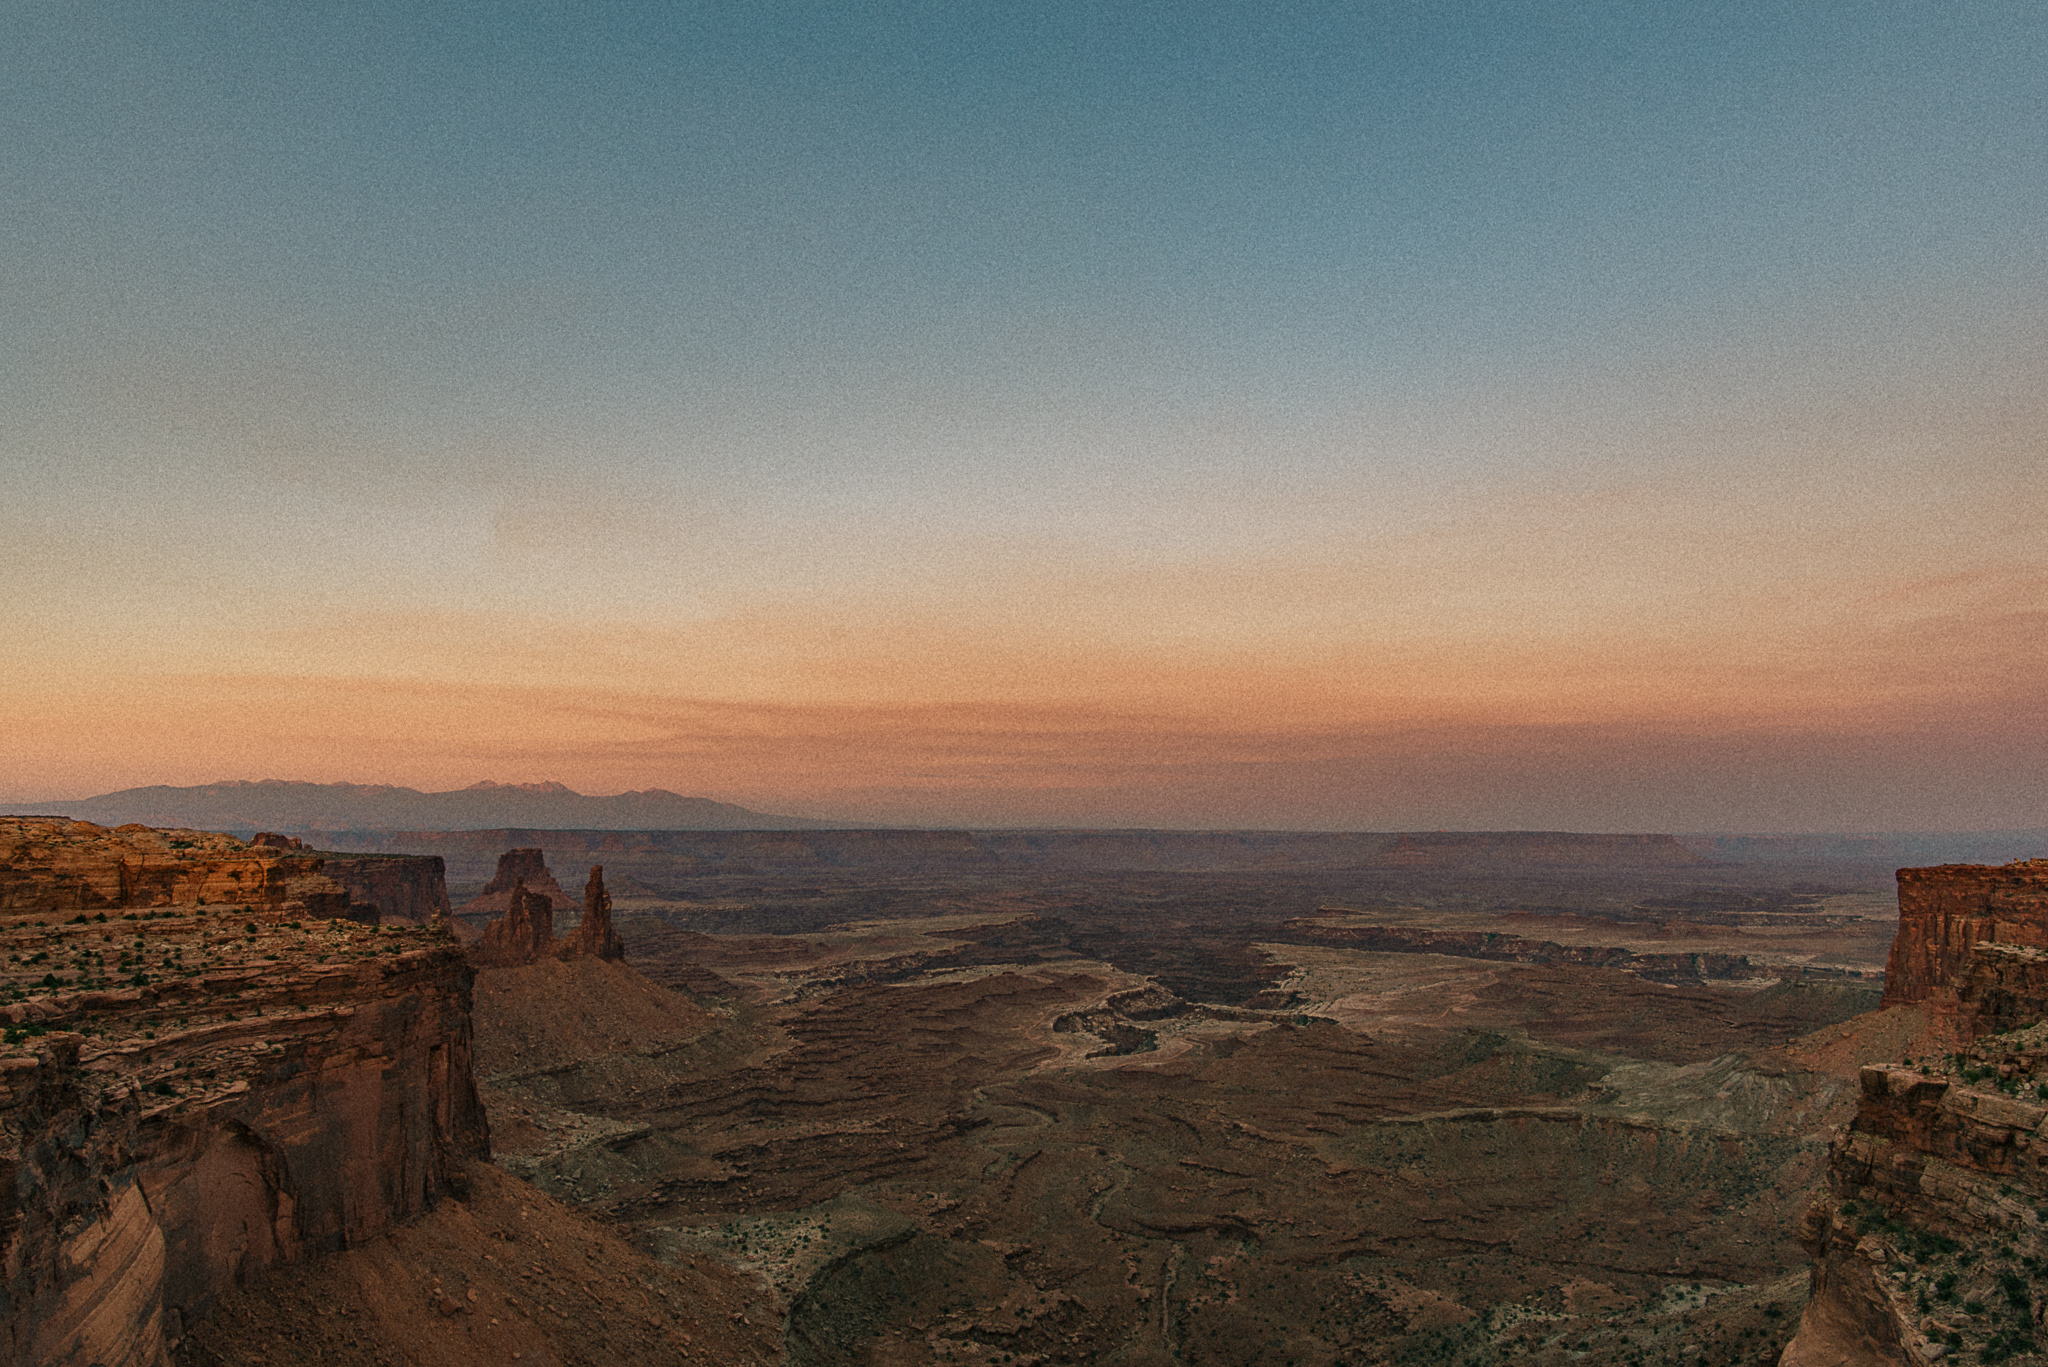 Canyonlands Nikon D750 20mm 1.8 f/8 1/80 sec ISO 400